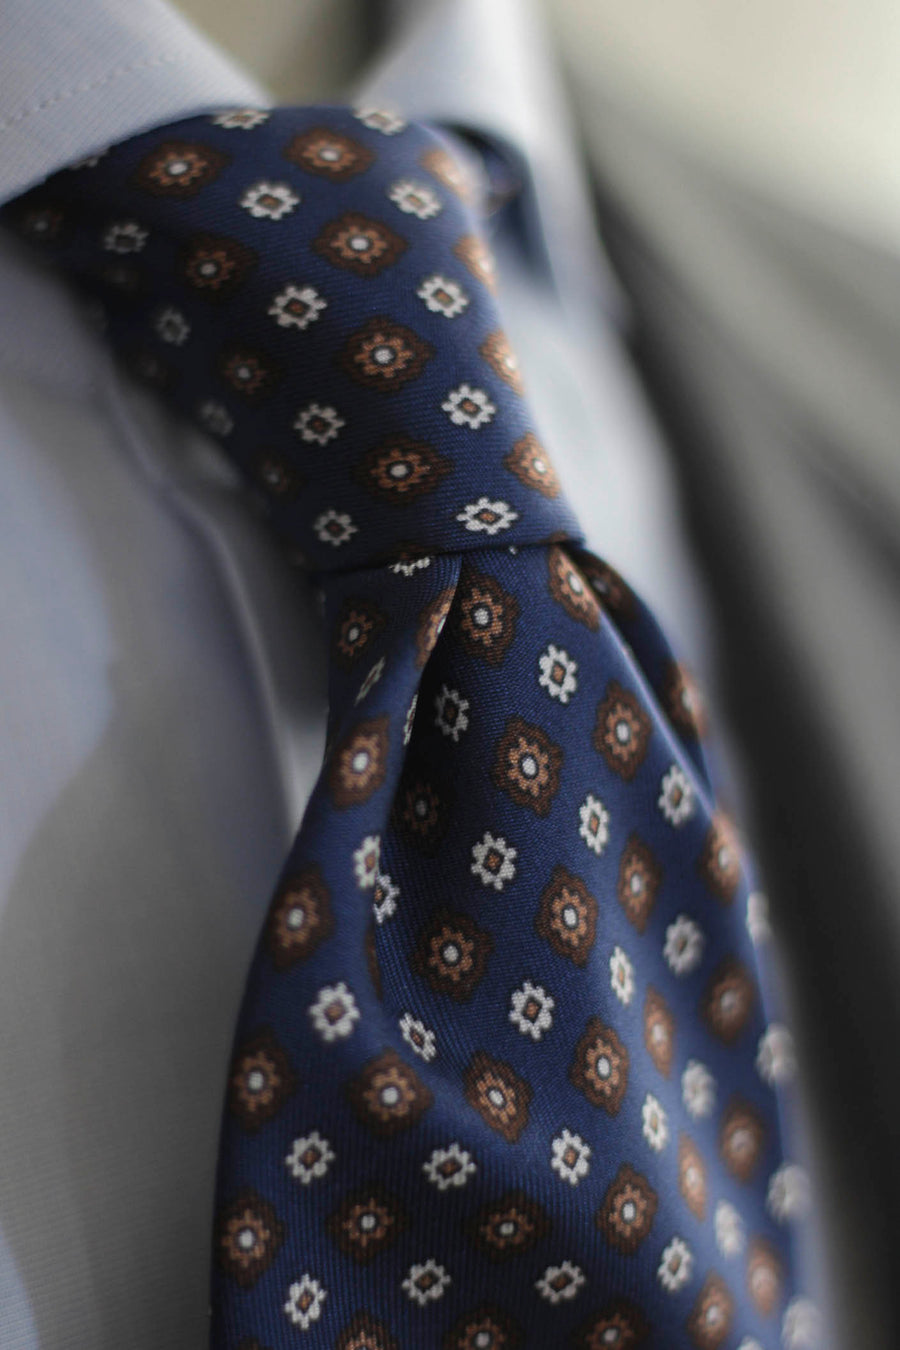 Napoli Blue Silk Tie With White and Brown Daisies